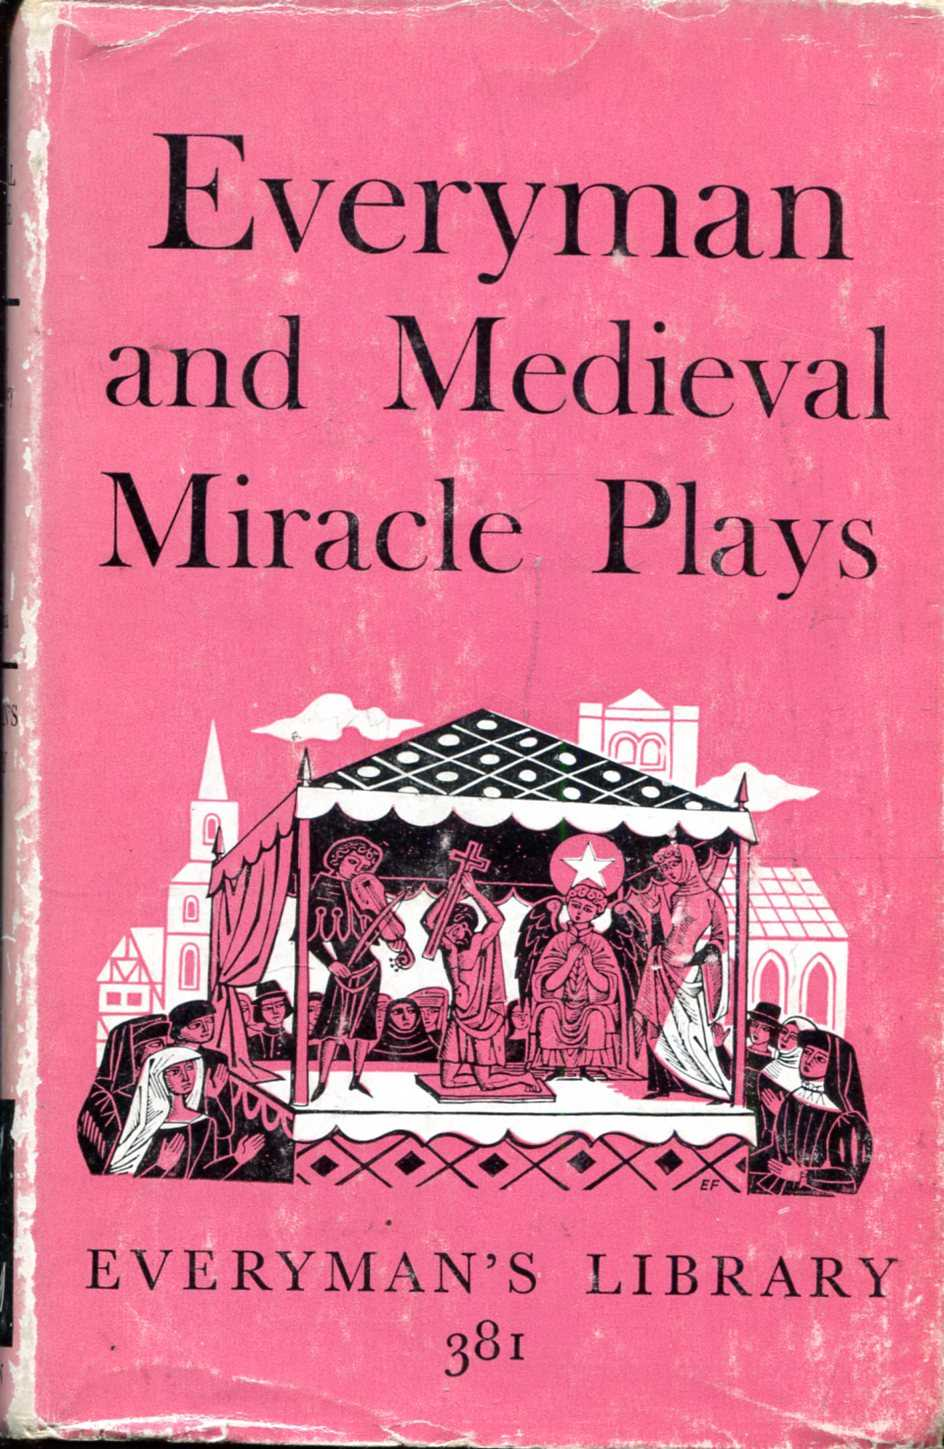 Image for Everyman and Medieval Miracle Plays (Everyman Library No. 381)